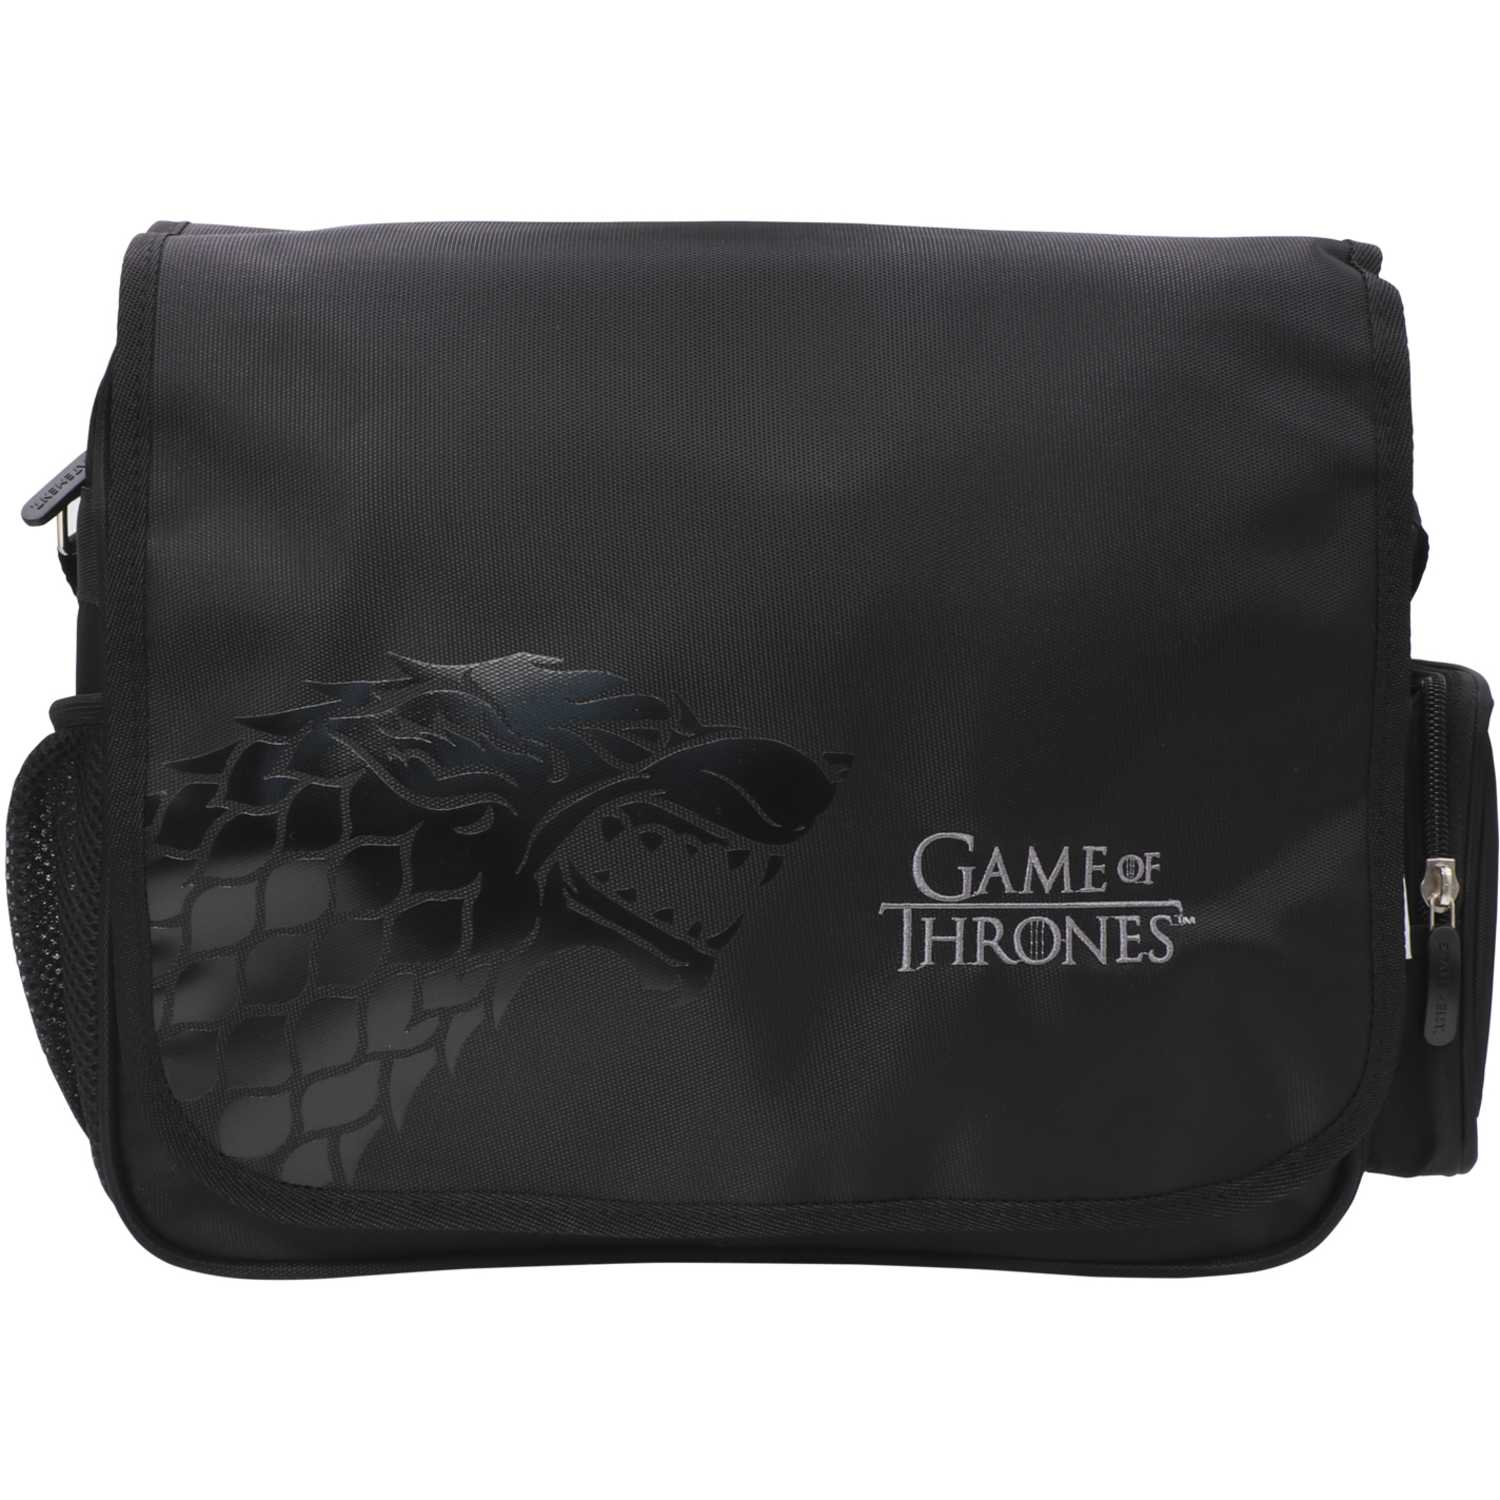 Morral de Hombre Game Of Thones Negro morral game of thrones